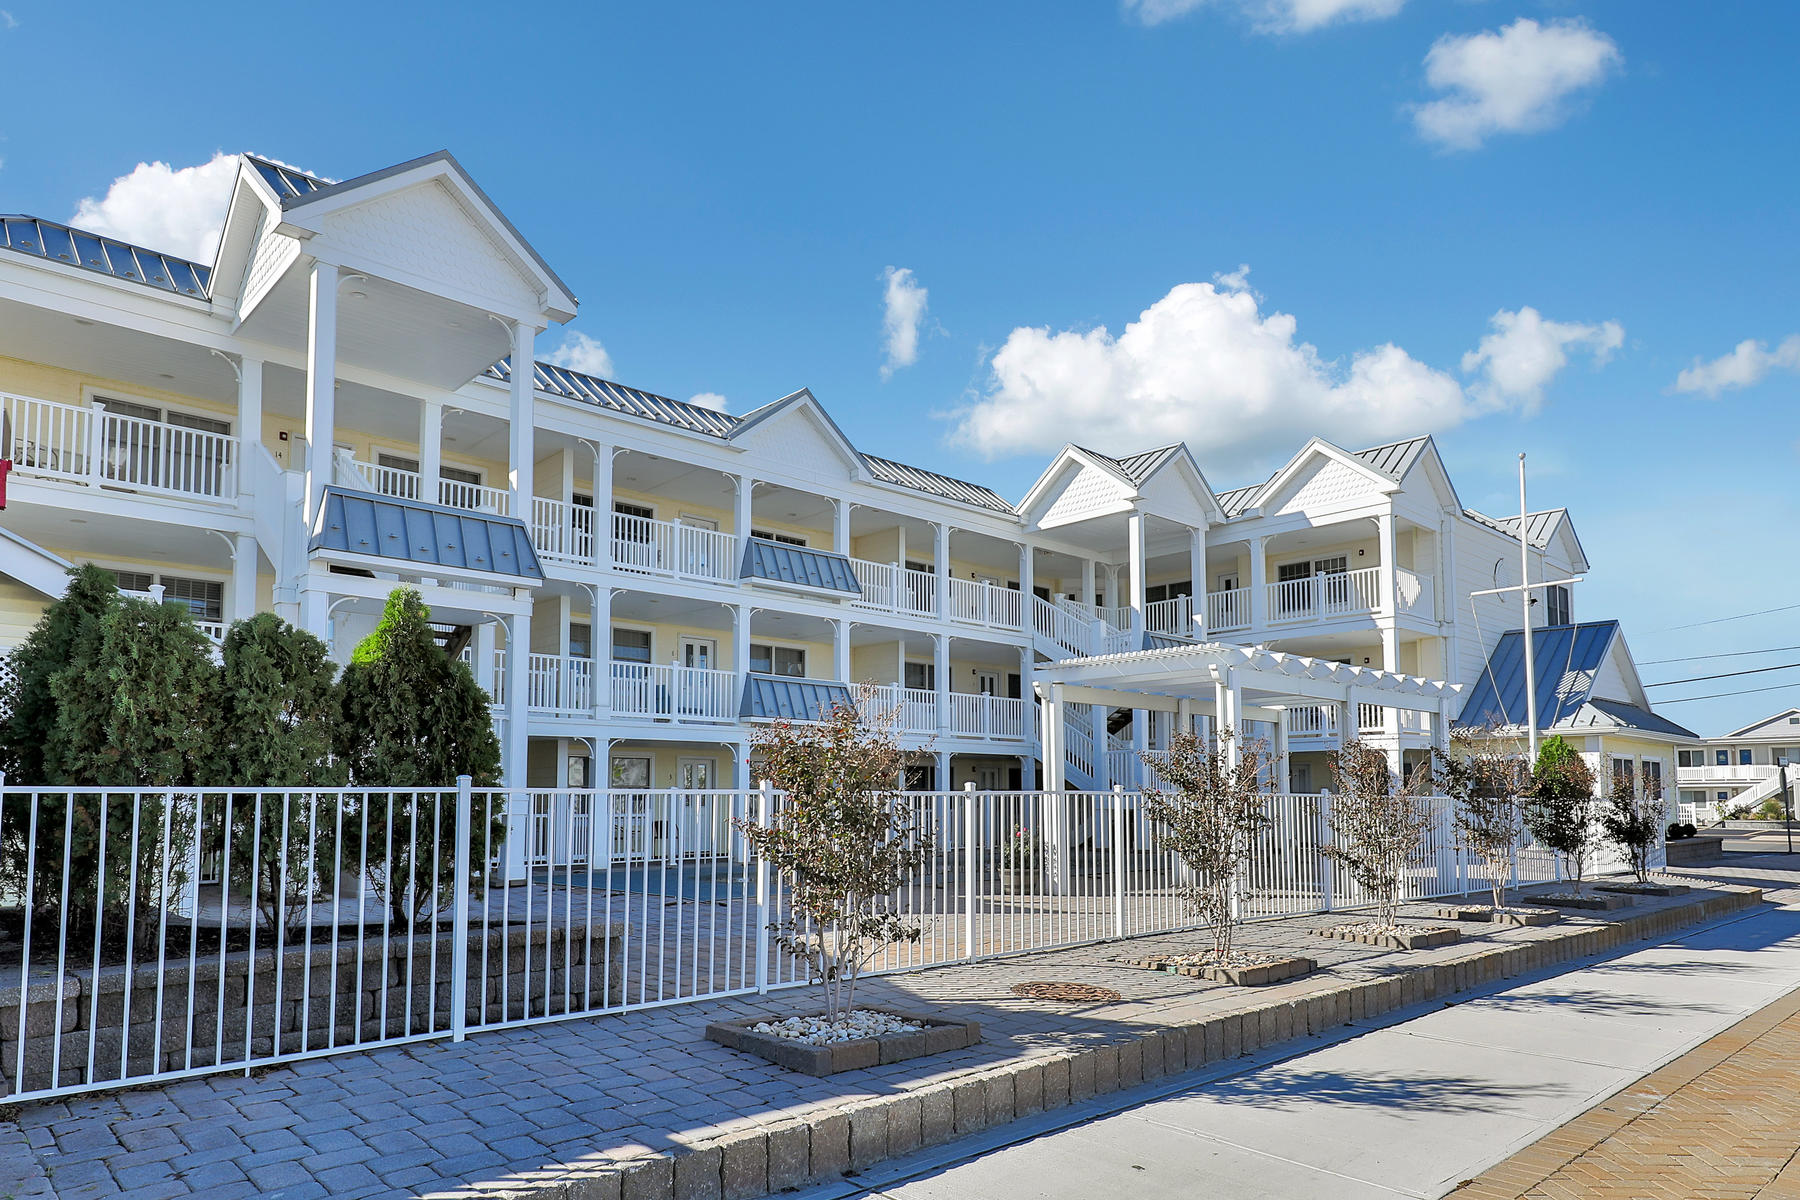 Appartement en copropriété pour l Vente à Beautiful Summerhaven Condo 2400 Grand Central Avenue,Unit #11 Lavallette, New Jersey, 08735 États-Unis